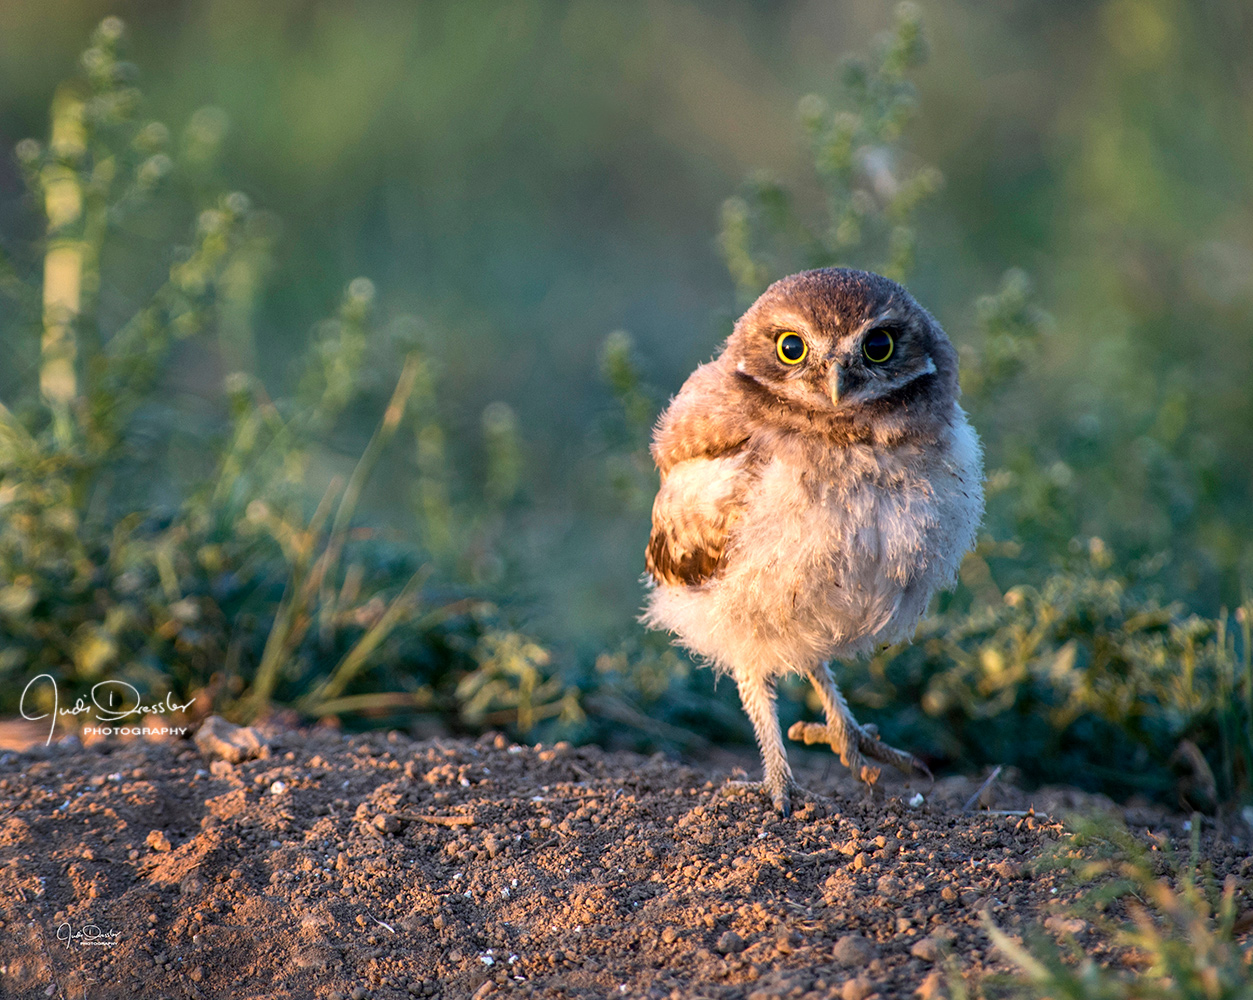 Out on my own, burrowing owl